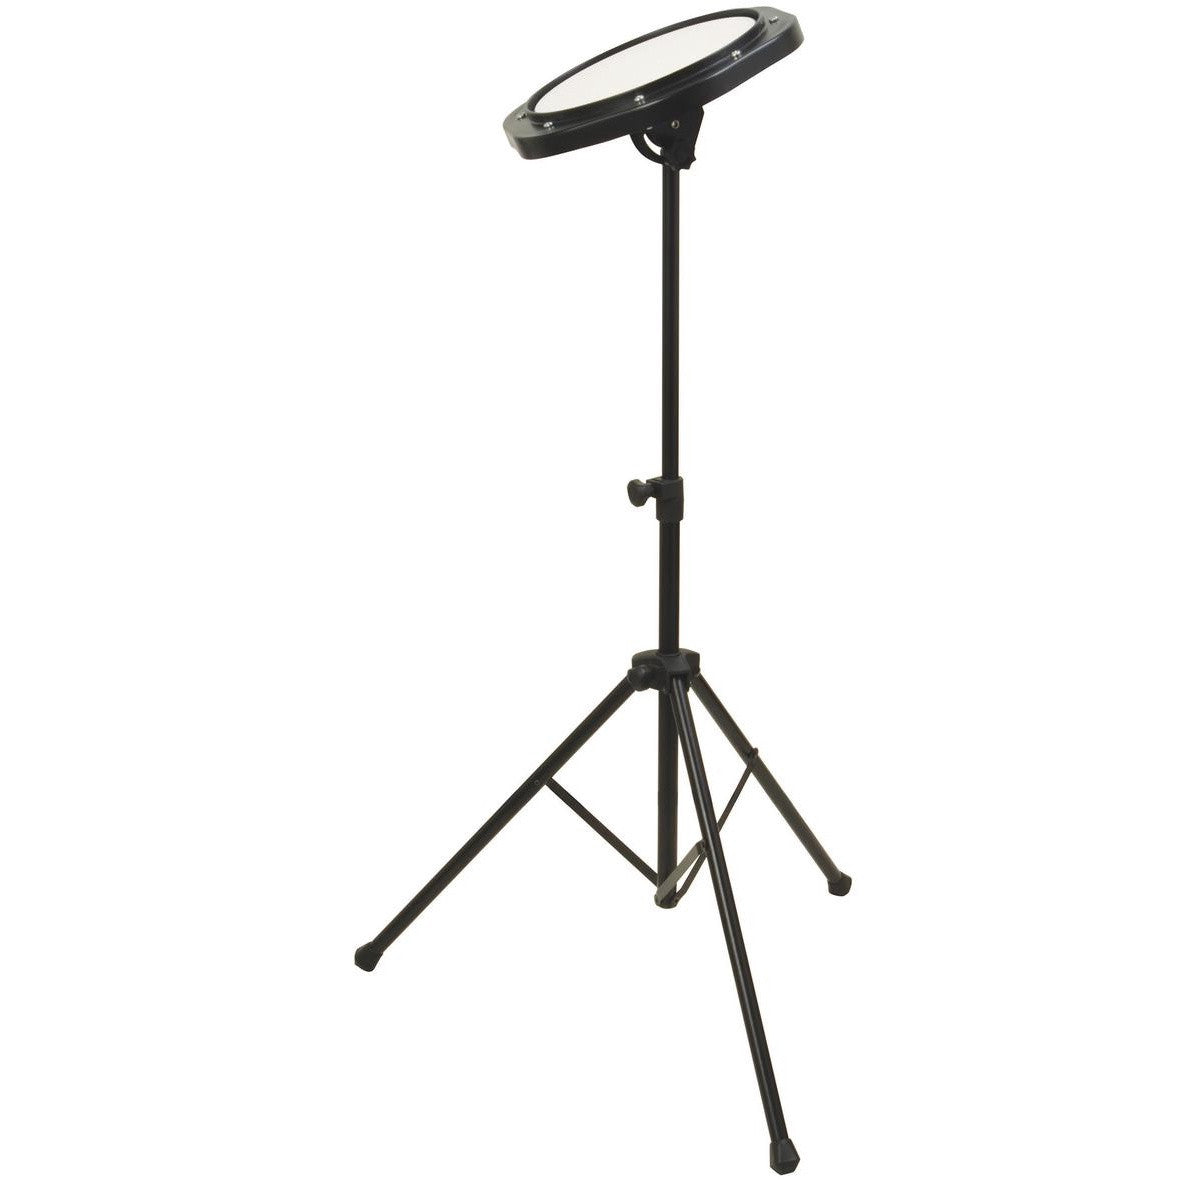 Drum Fire Drum Practice Pad with Stand & Bag